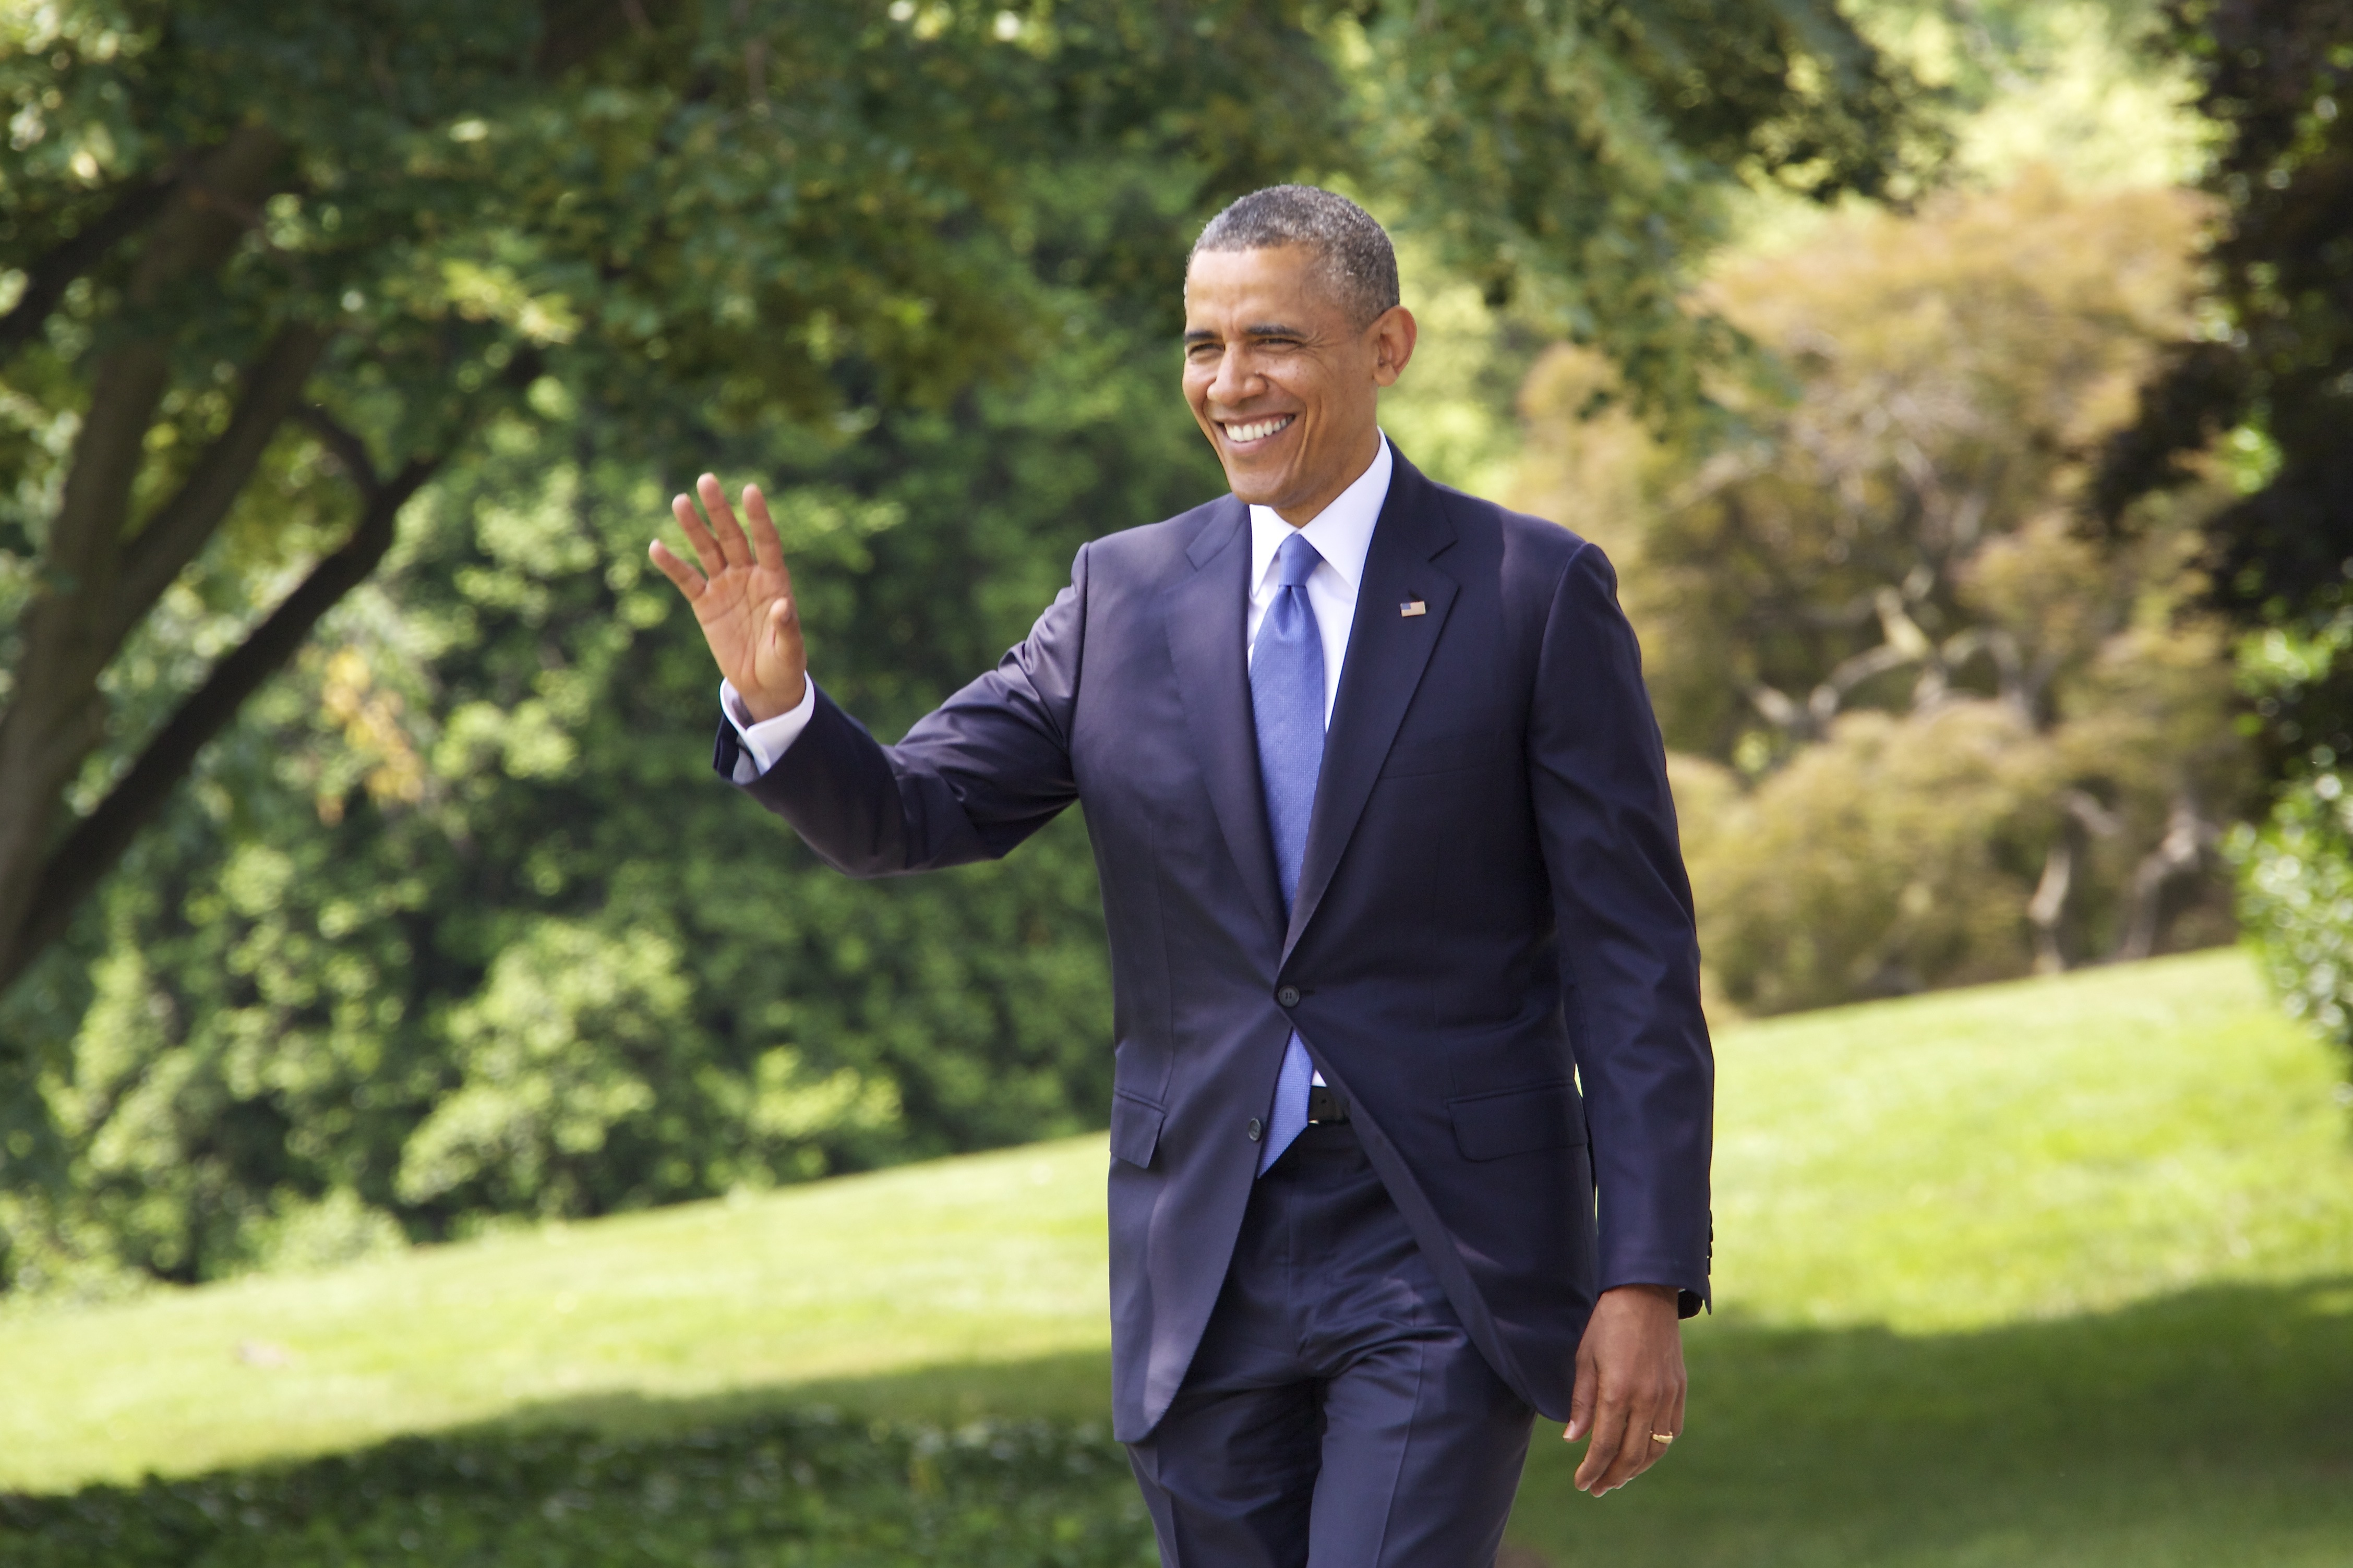 President Barack Obama waves as he walks on the White House lawn Friday, June 13, 2014.